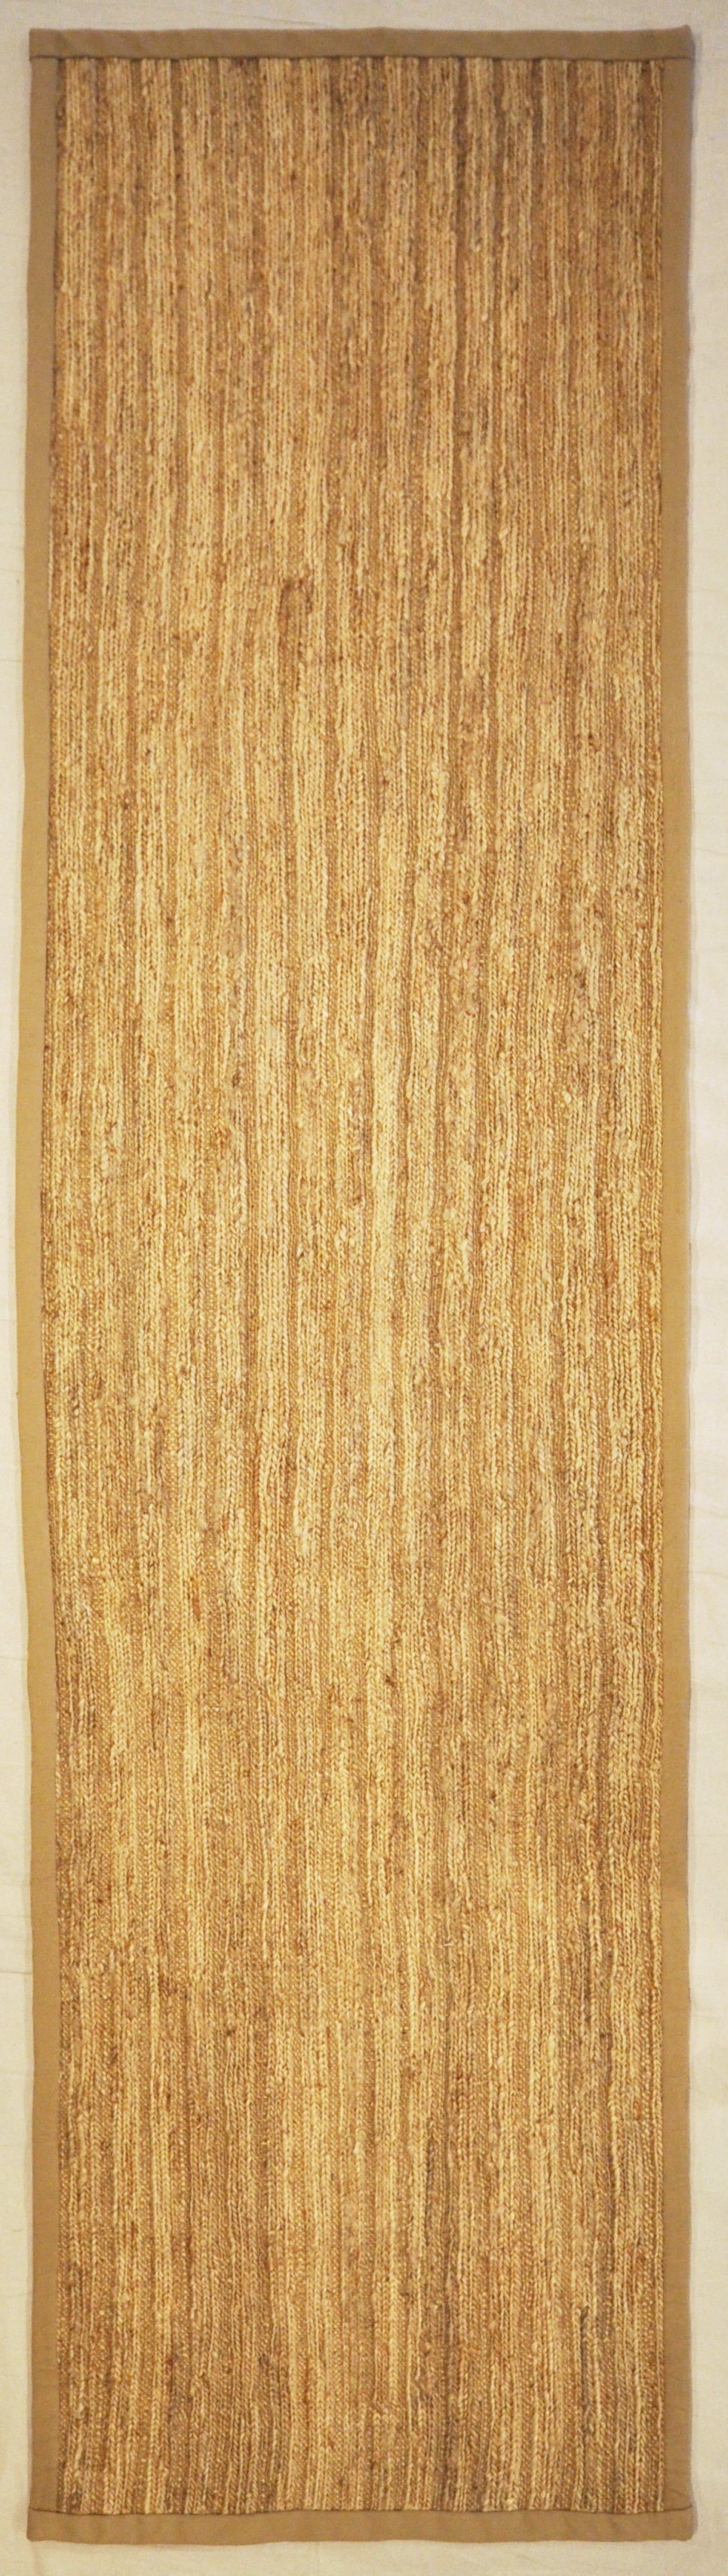 Jute runner | Rugs & More| Santa Barbara Design Center